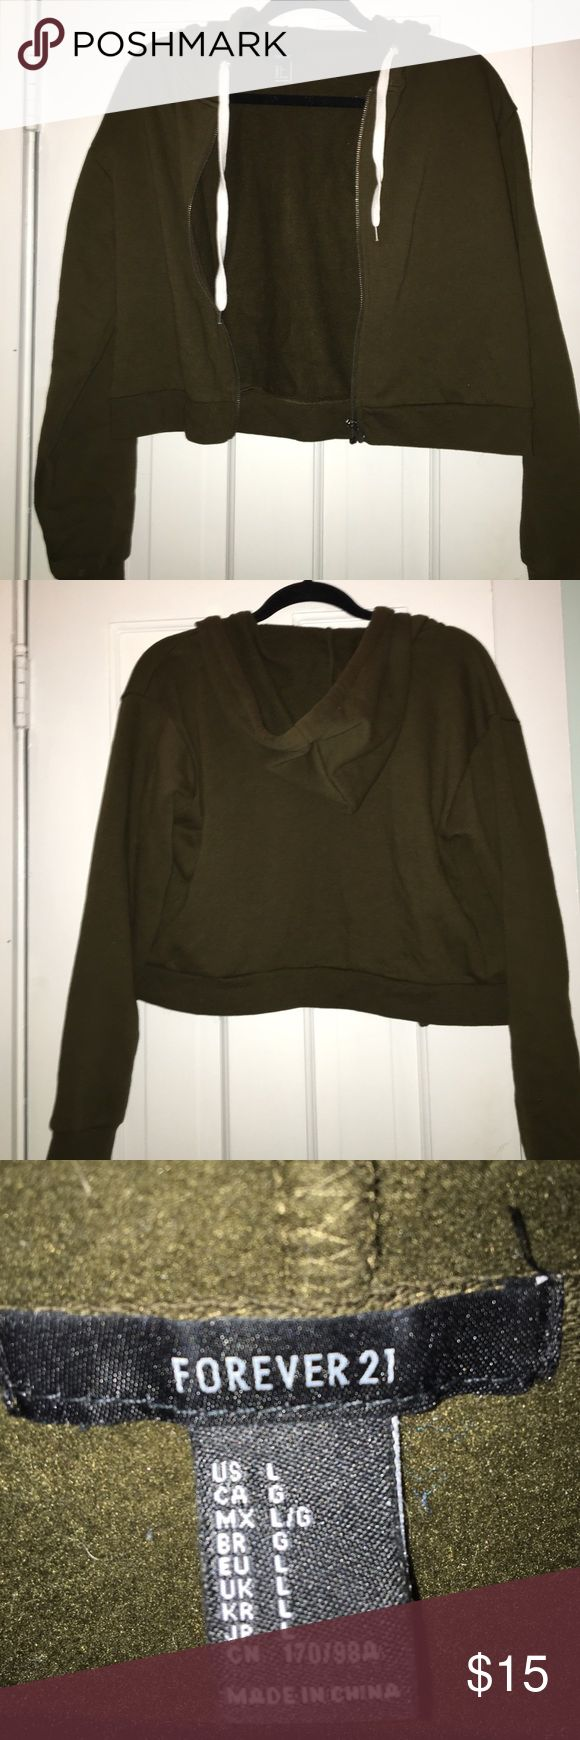 Forever 21 NEW green zip up hoodie This is a cropped dark olive green zip up hoodie. It's very soft and has never been worn. NEW! Forever 21 Sweaters